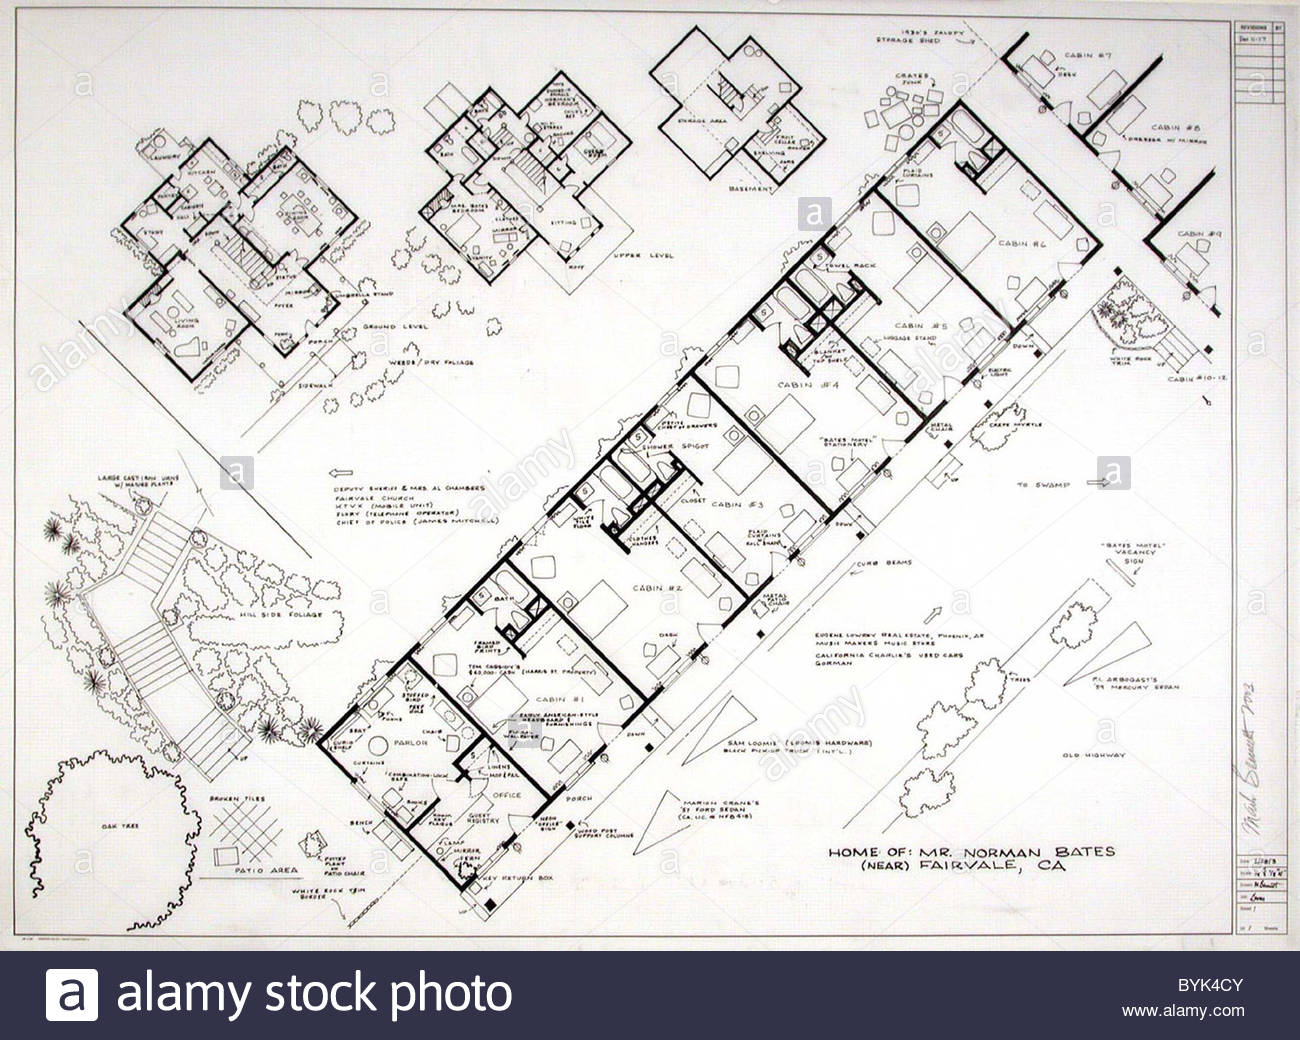 Fantasy Floor plans Psycho Bates Motel Ever wanted to build a – Psycho House Floor Plans